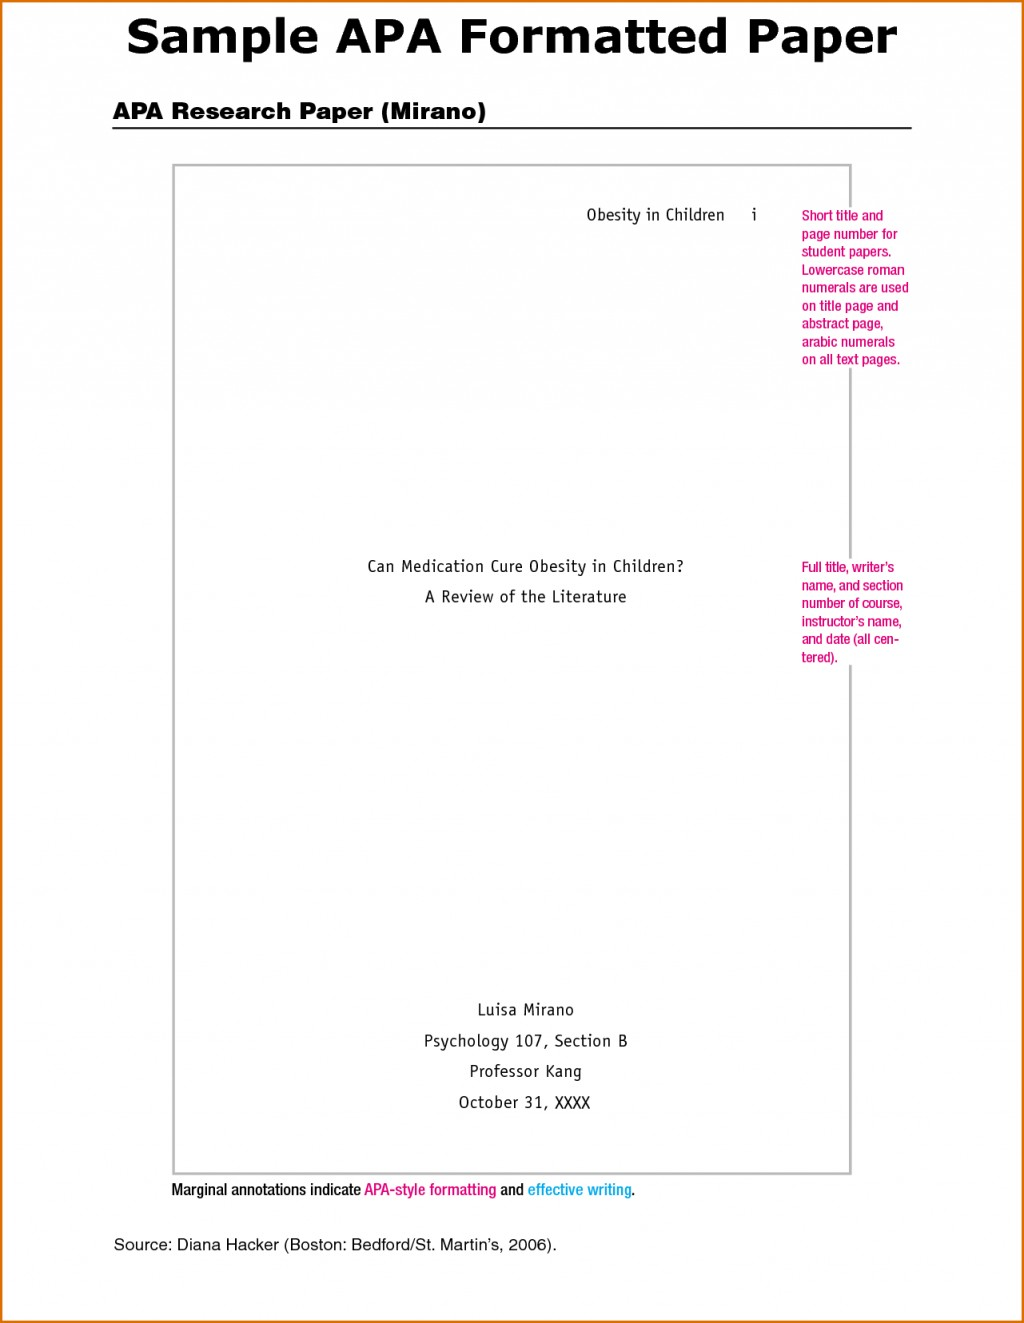 015 Apa Paper Template Iztn6rys Research Front Page Striking Format Title Chicago For High School Mla Style Large